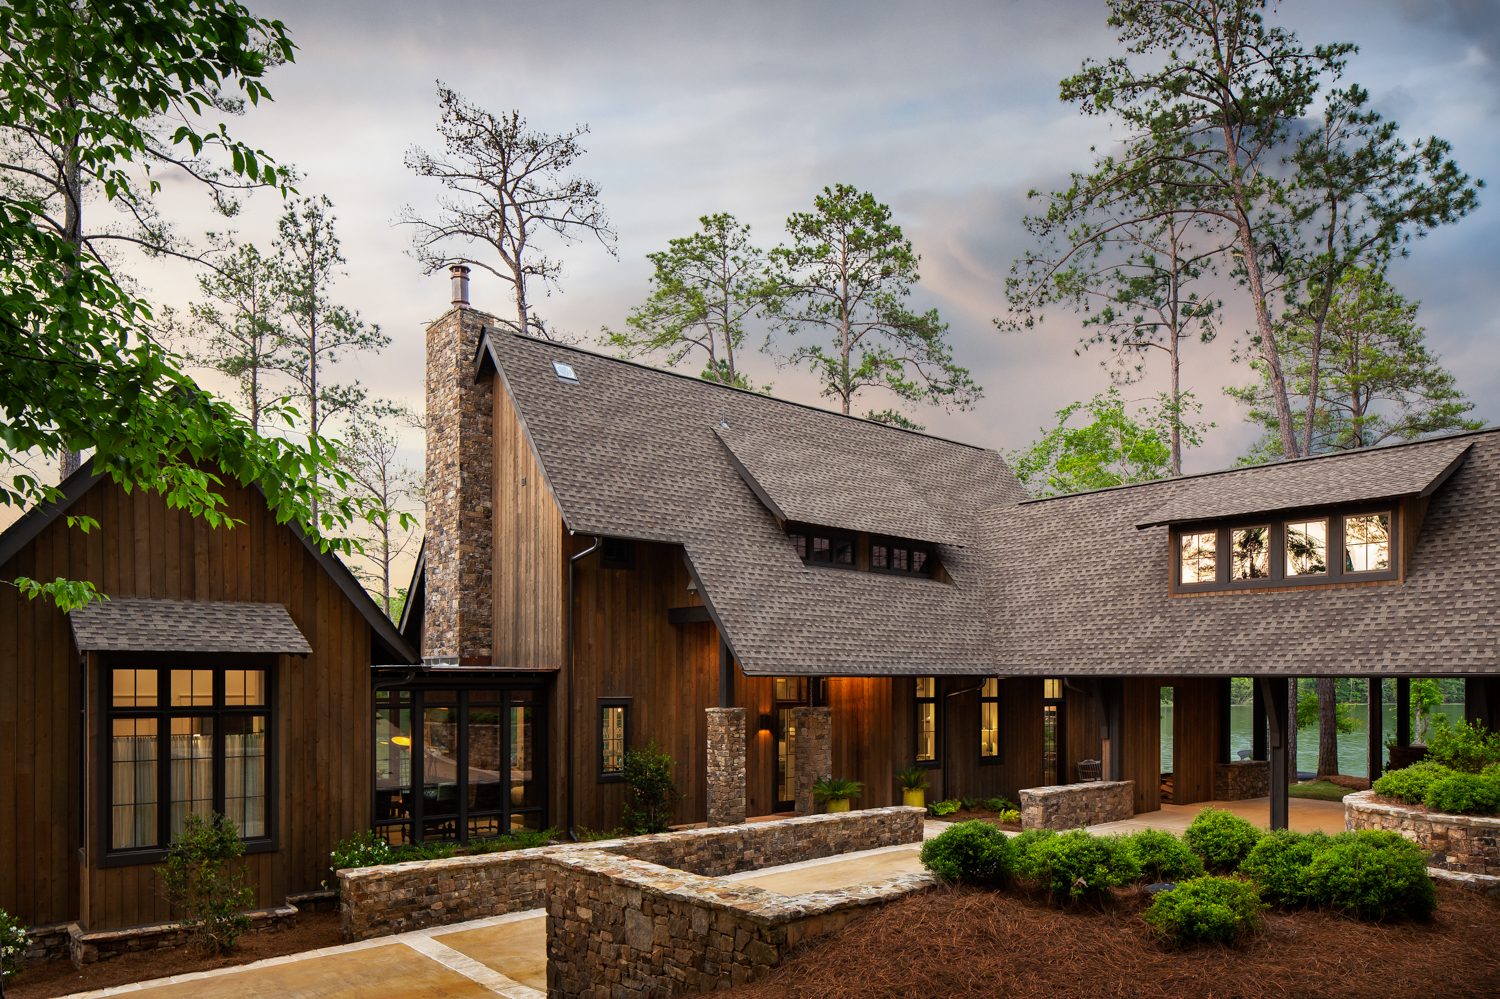 Lake Martin Project - Lake Martin luxury lake house photographed for Birmingham Magazine, Krumdieck architecture, and Russell Lands.